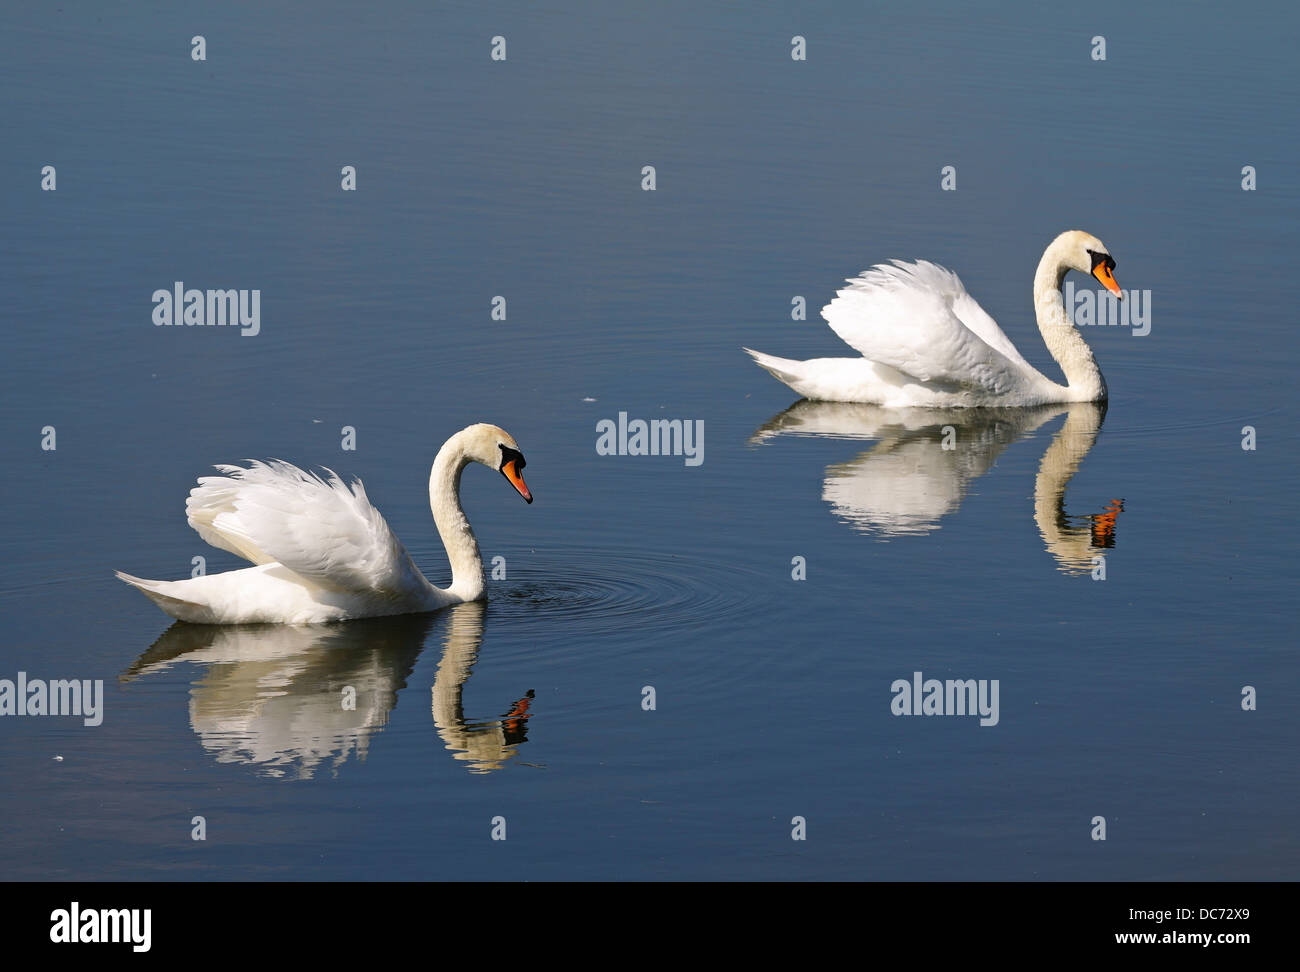 Pair of graceful white swans and their reflection on a calm lake Stock Photo